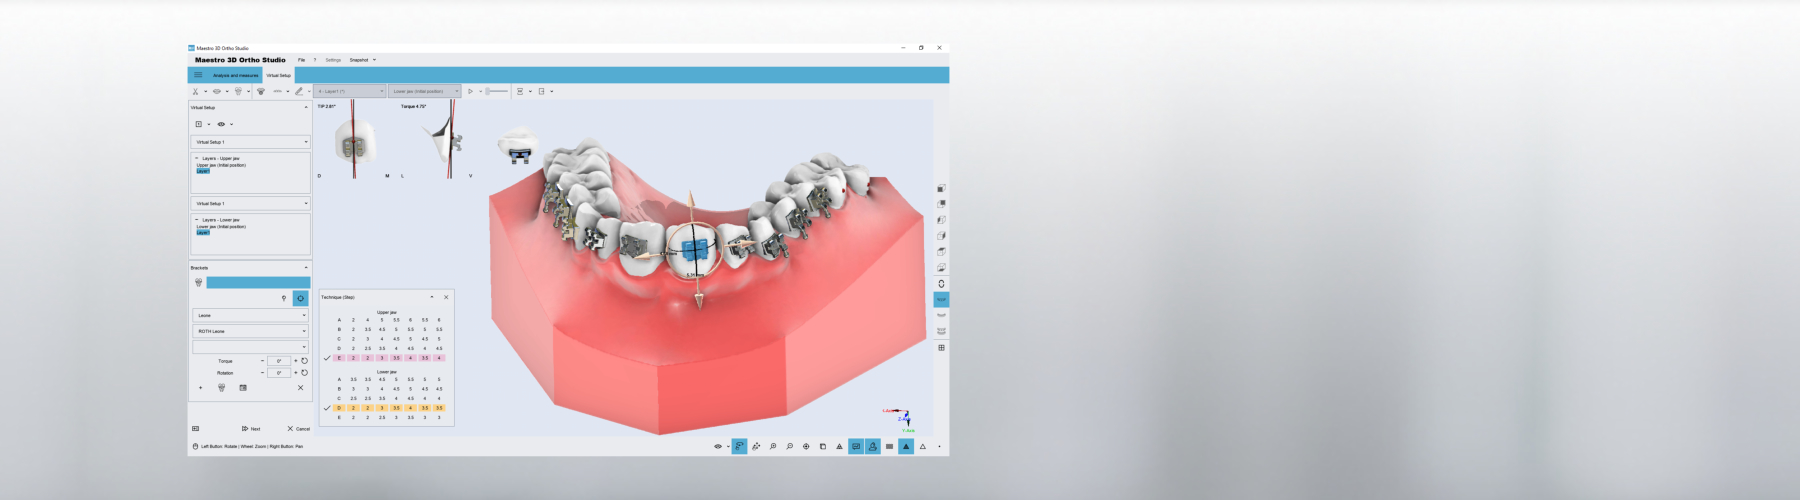 Maestro 3D | Dental Studio | Ortho Studio